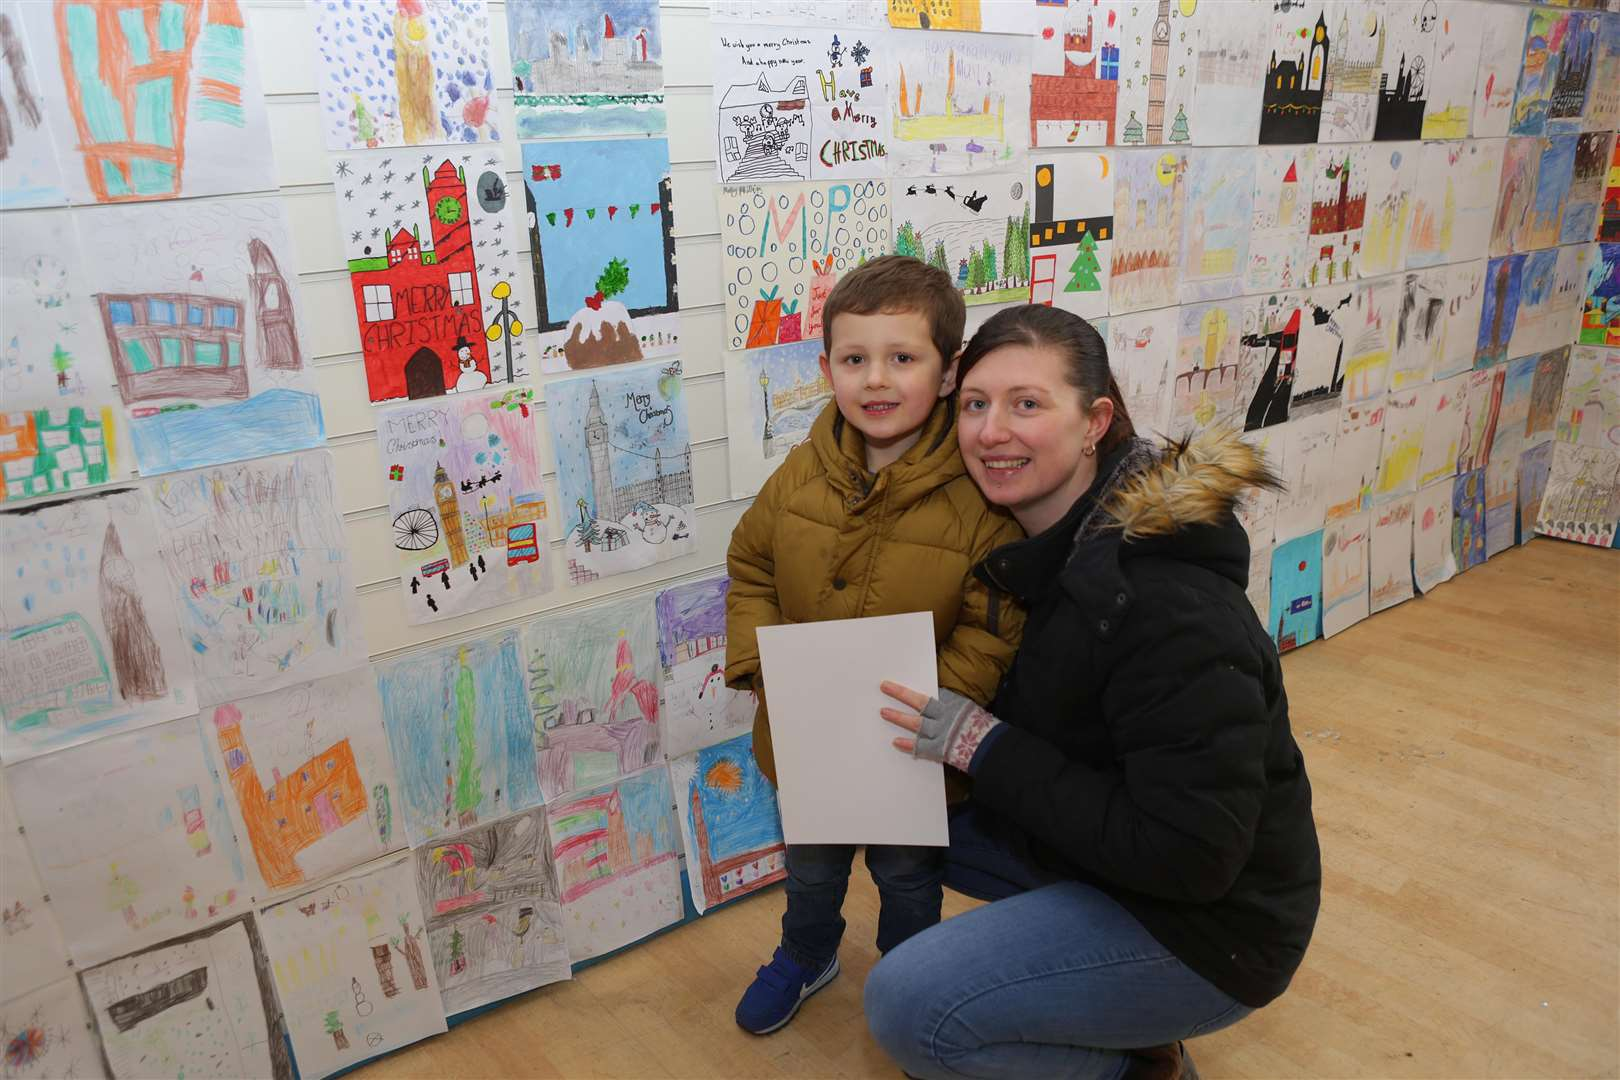 Newark Christmas Light Switch On 2018. Noah Griffiths, 4 and his mum Leanne Sabey of Newark, take a look at the entries into the Robert Jenrick Chrismas Card Design Competition on display at the YMCA.. (5609182)